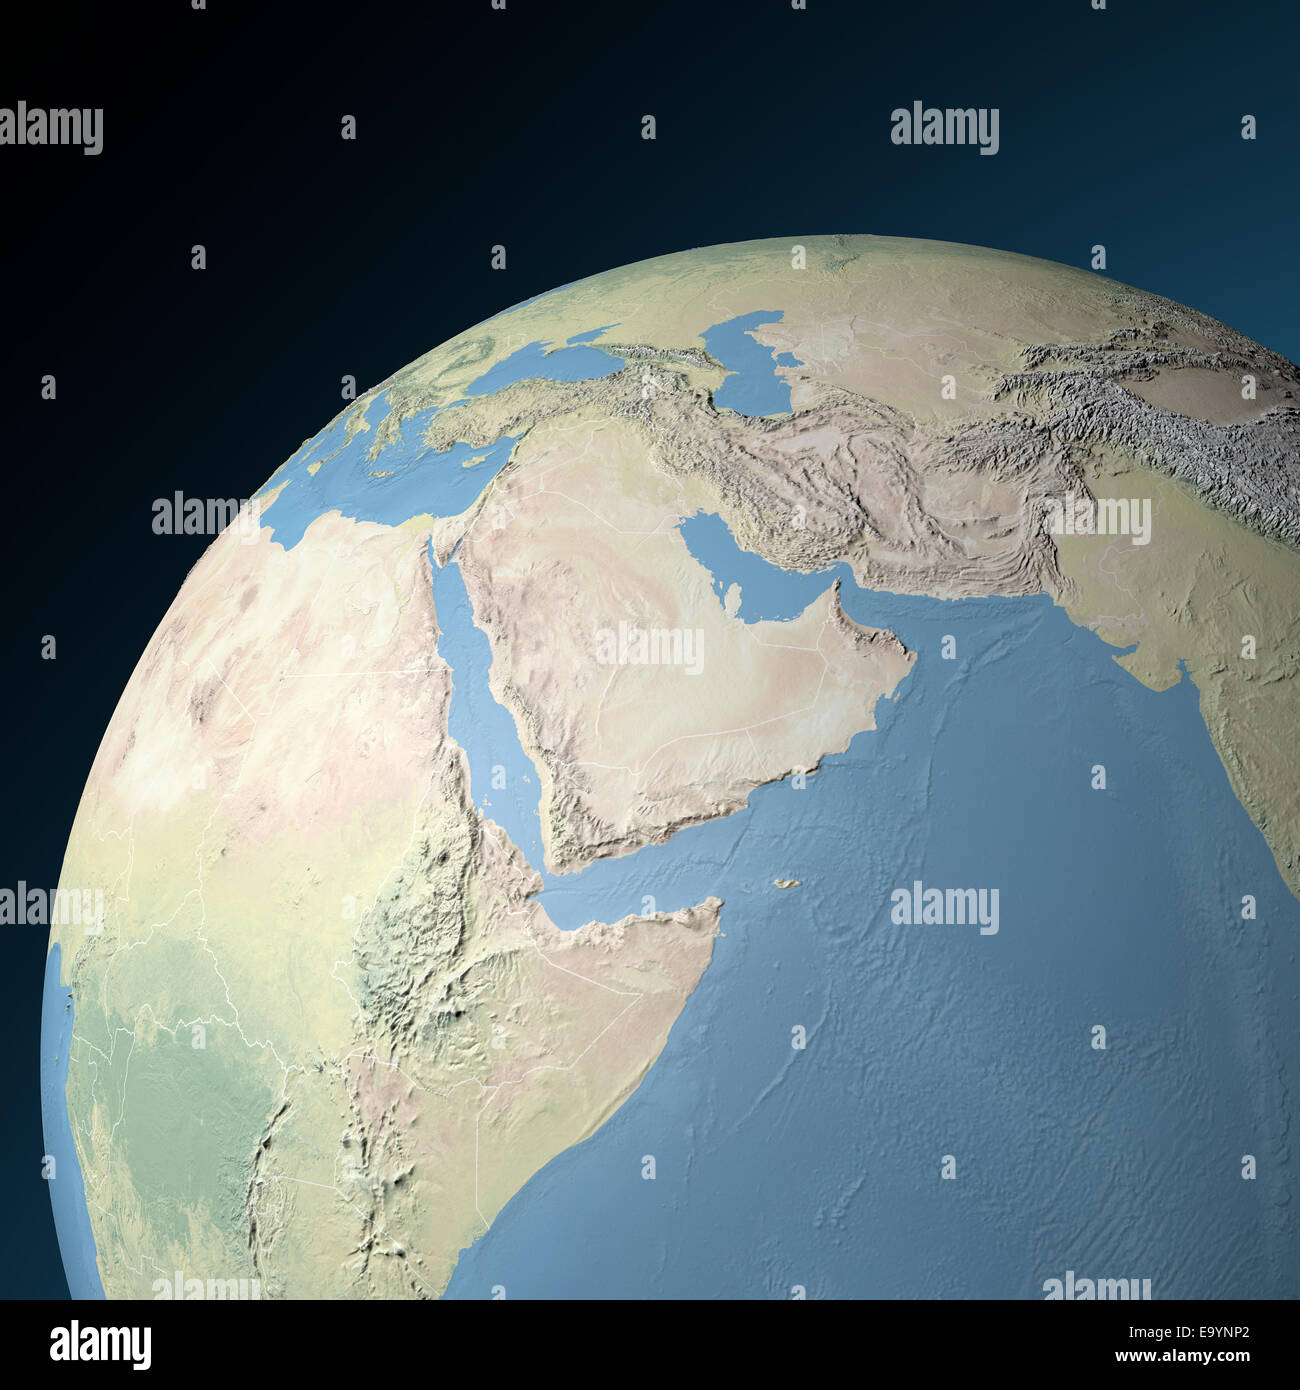 Physical map of Middle East. Elements of this image ...